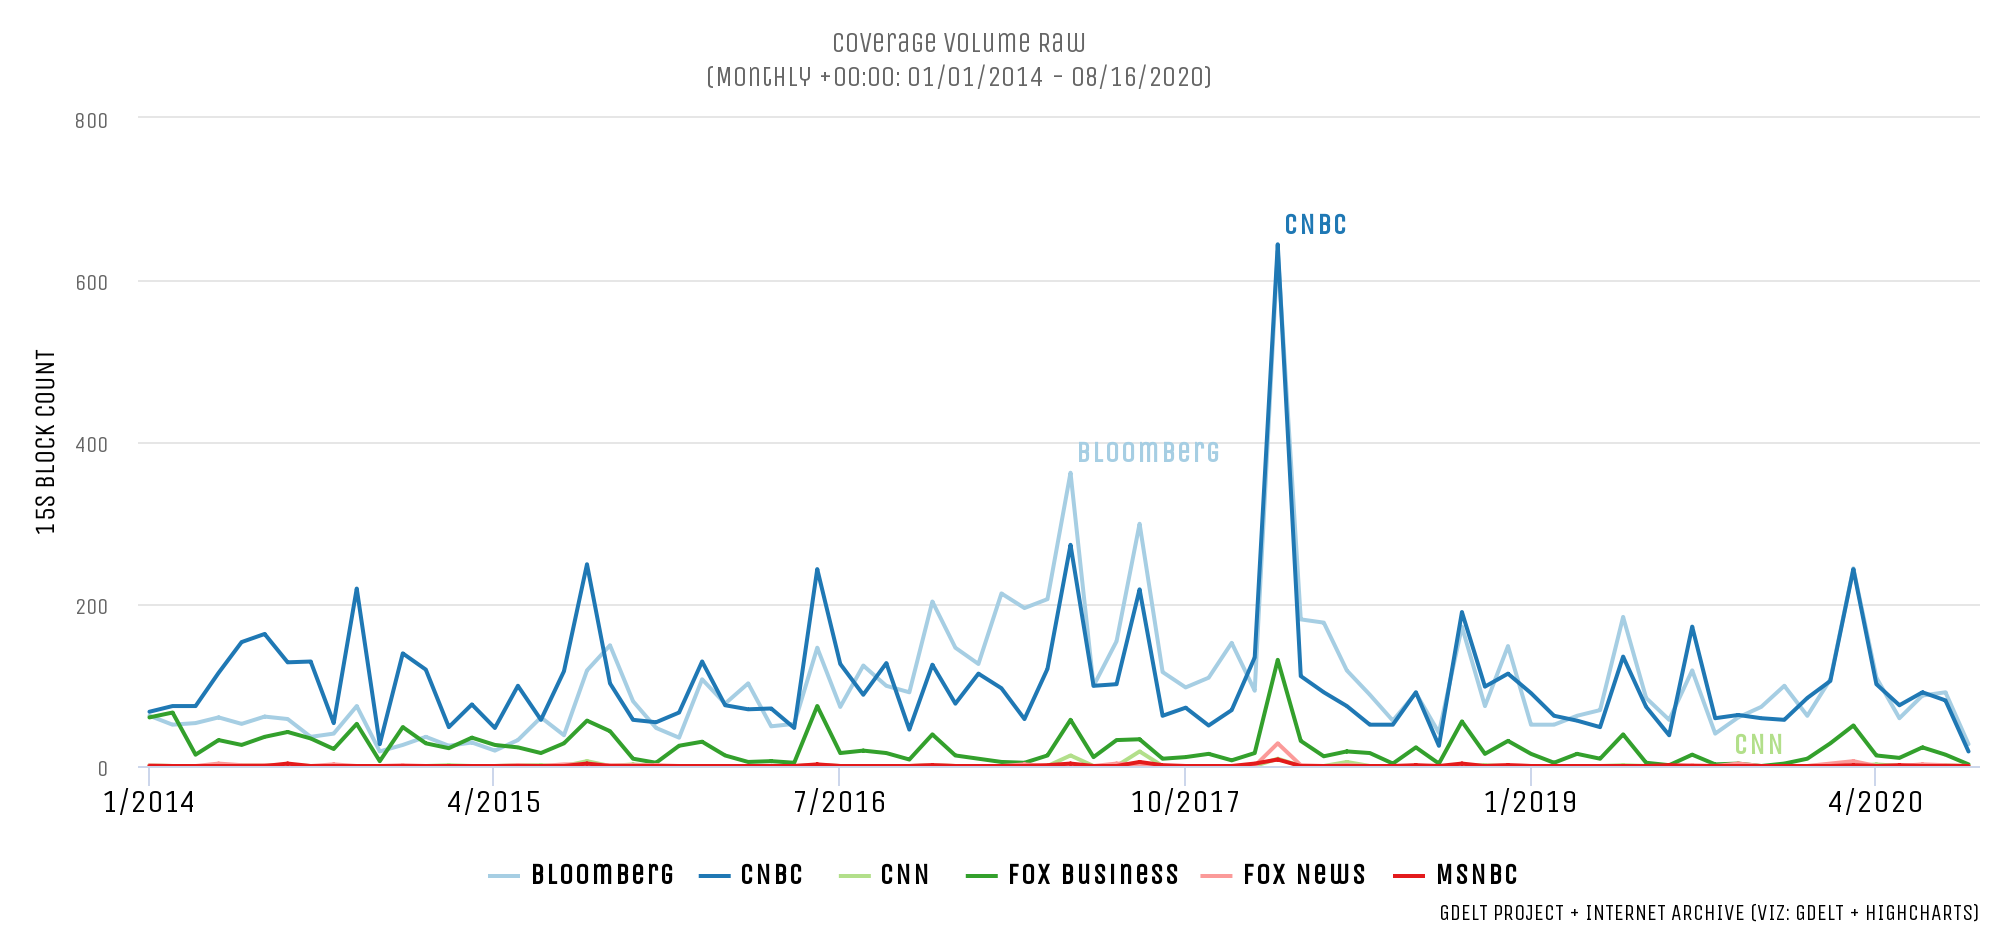 Real Clear Public Affairs - Volatility Index Not Surging During Pandemic